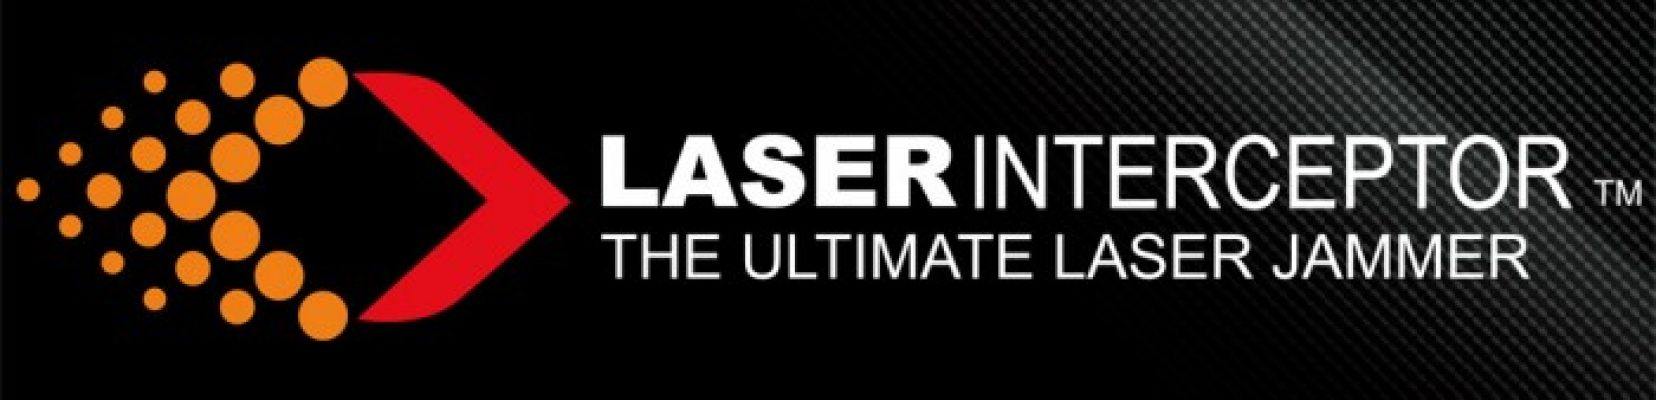 Laser Interceptor Production Status